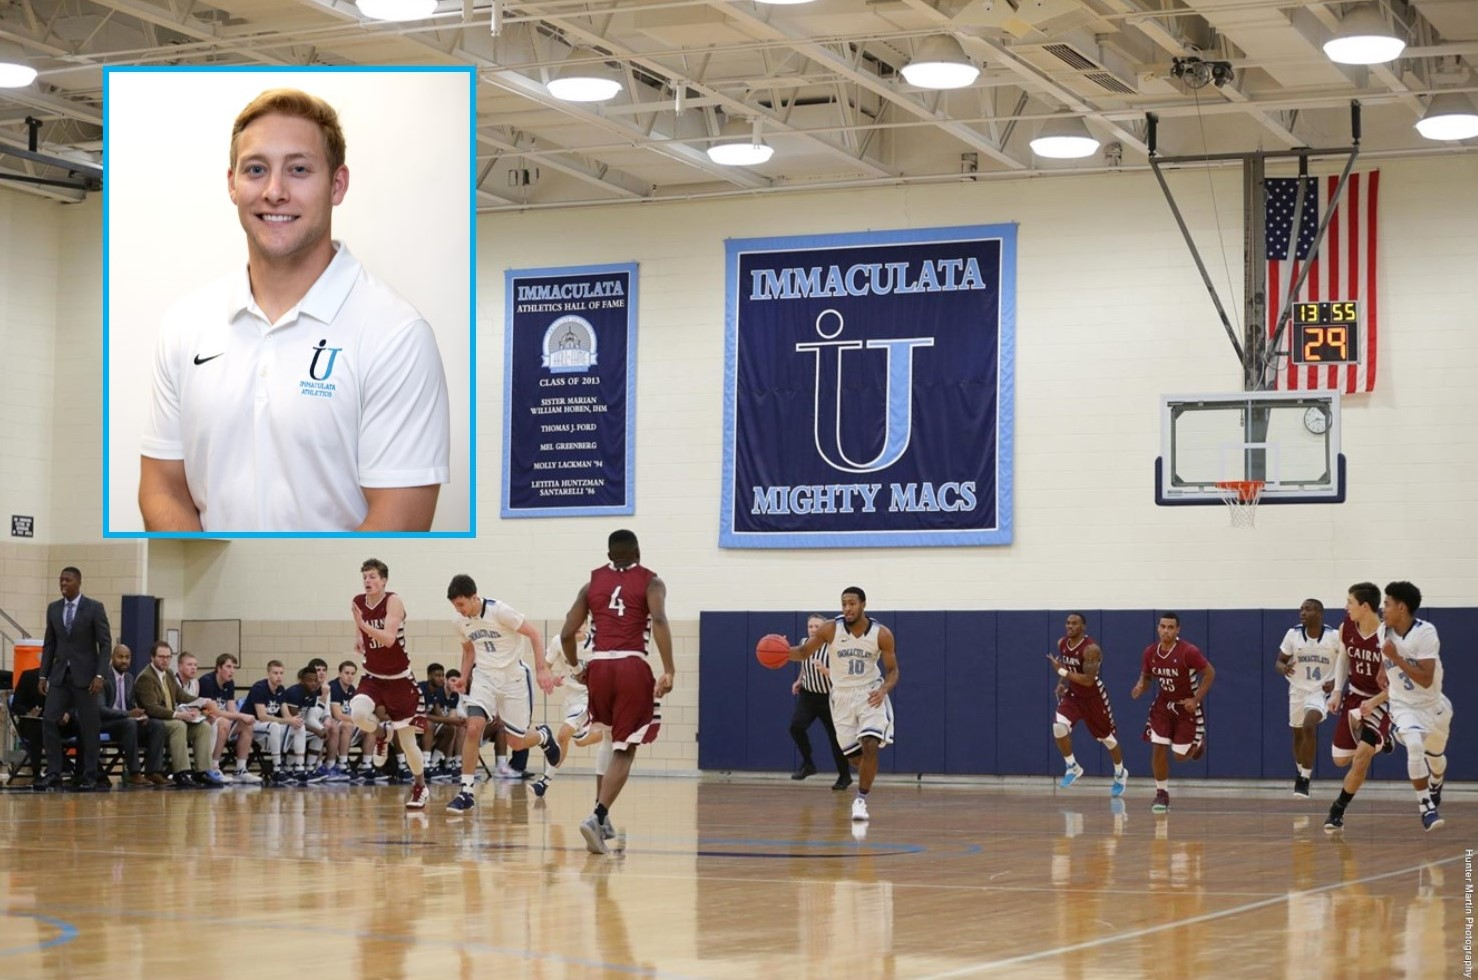 Immaculata University Promotes Exton Native to Director of Athletic Communications